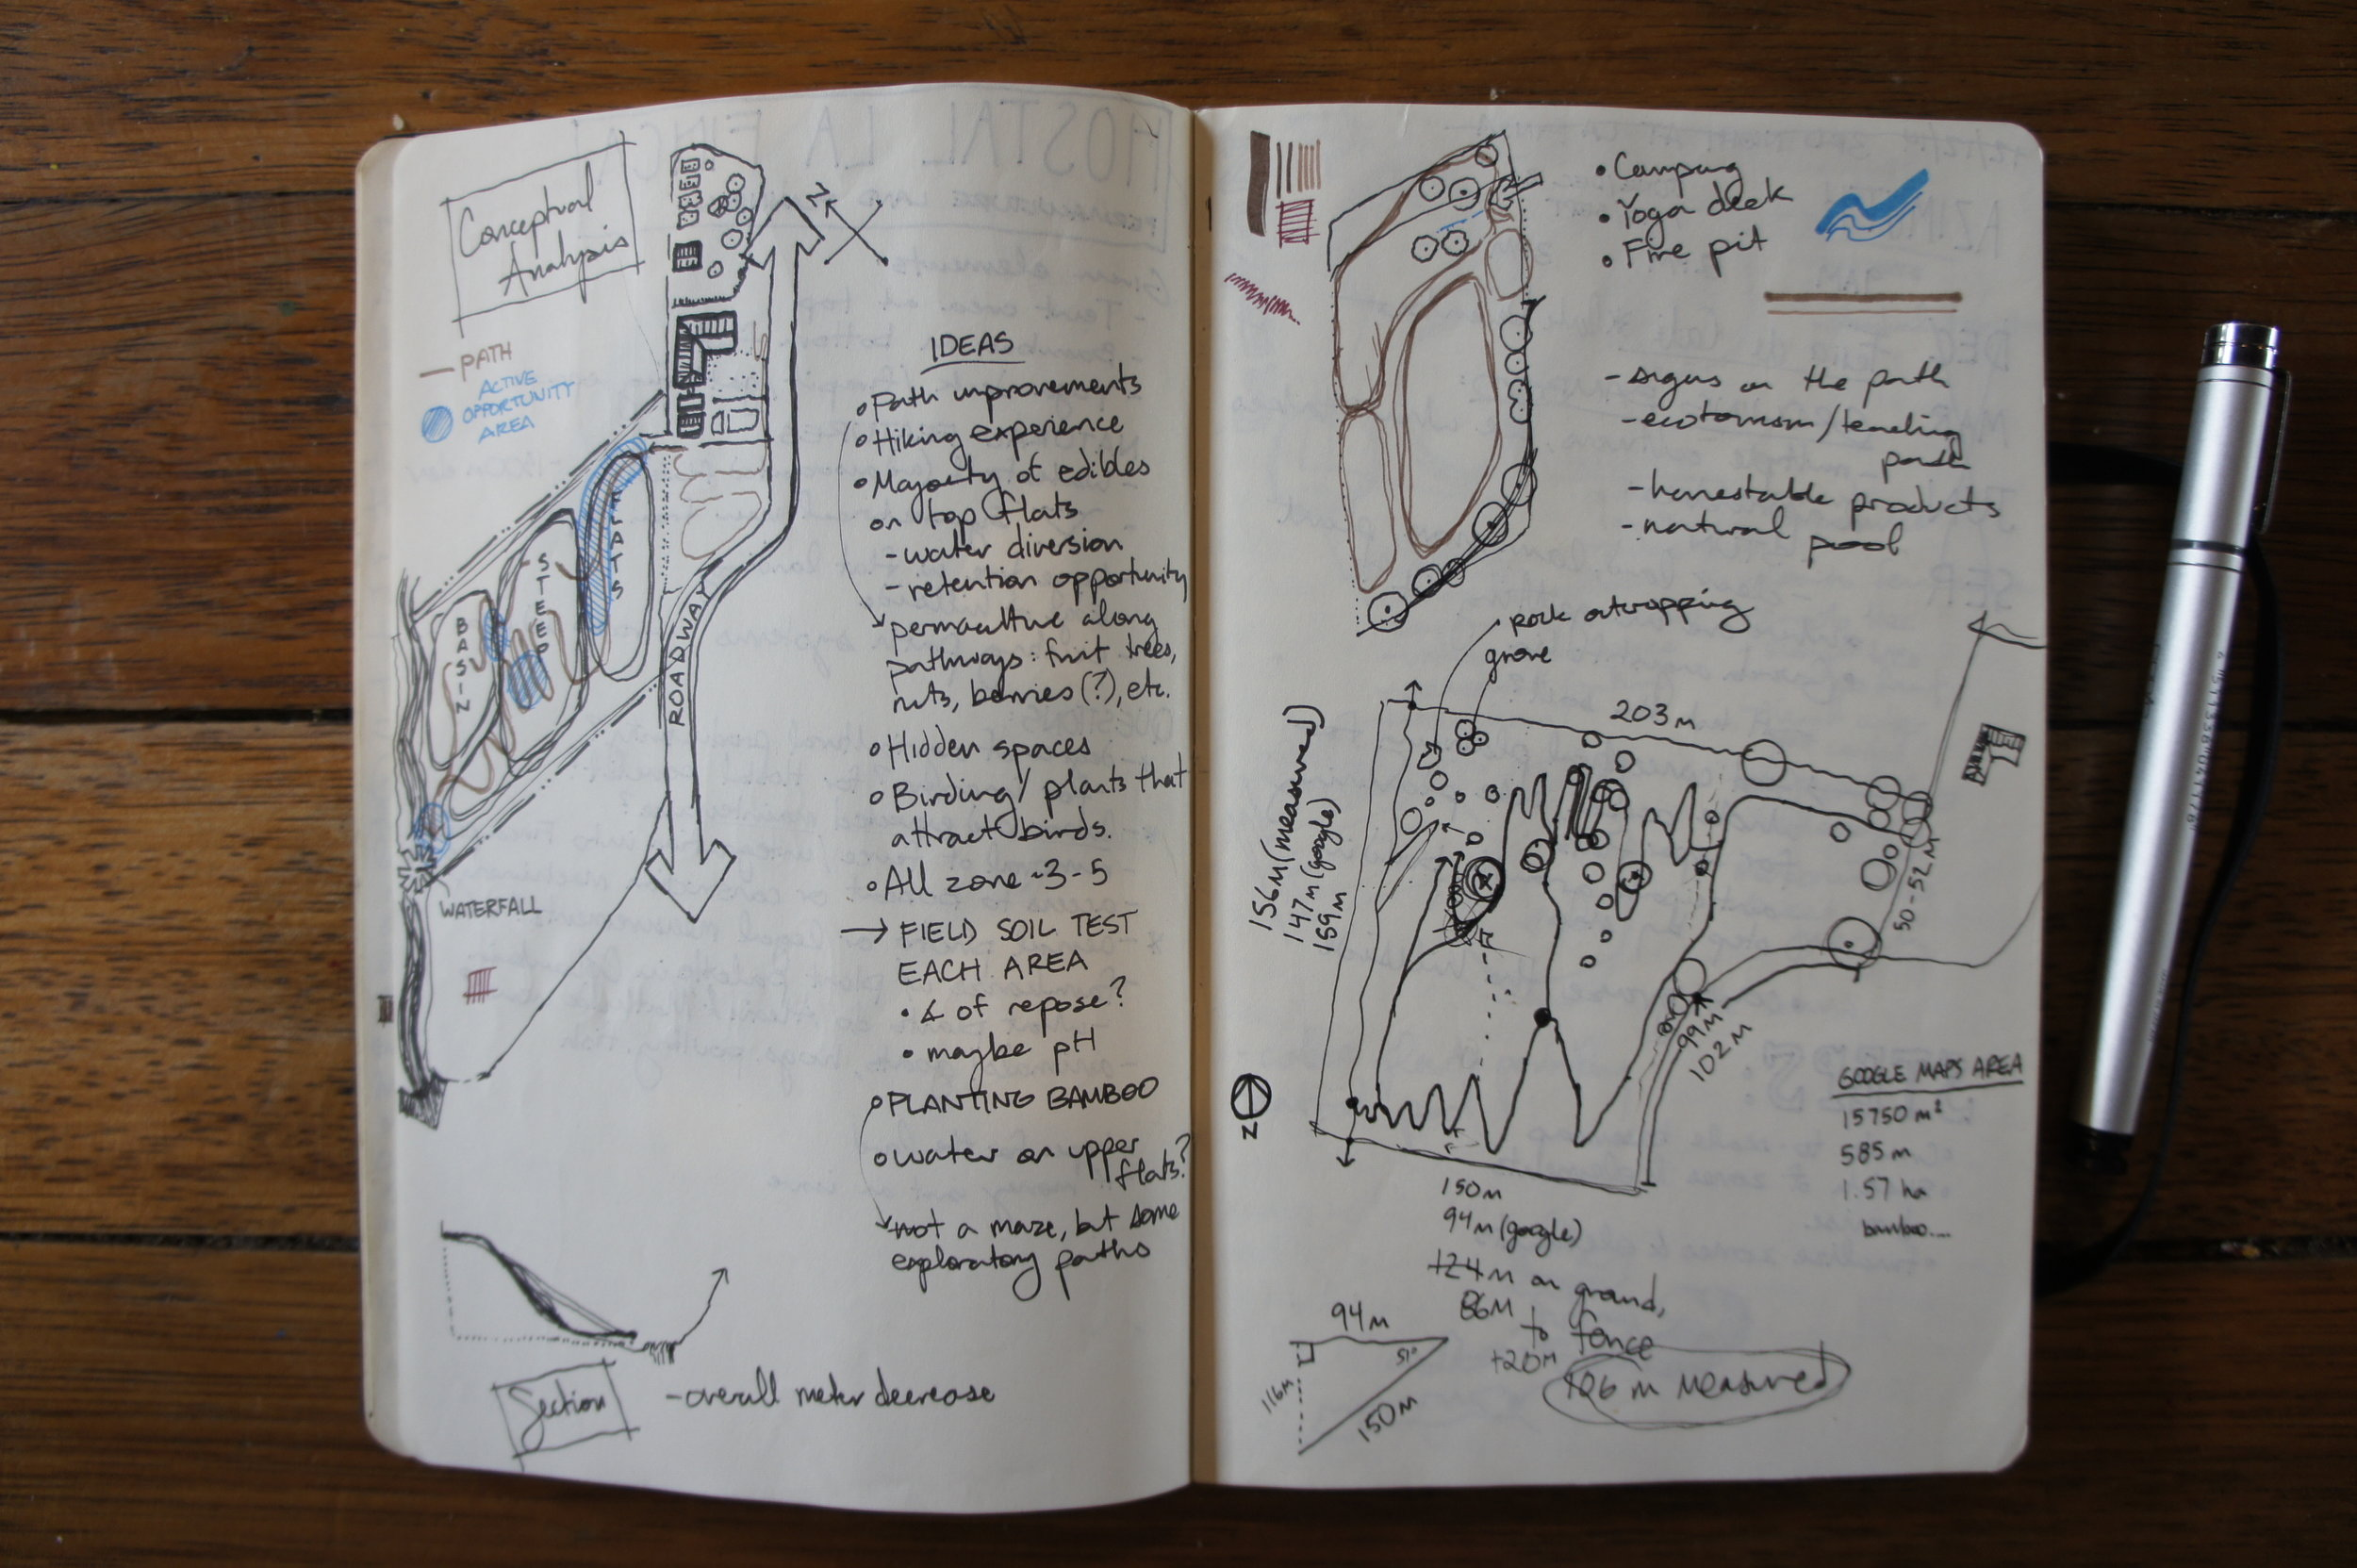 Field notes from walking the property